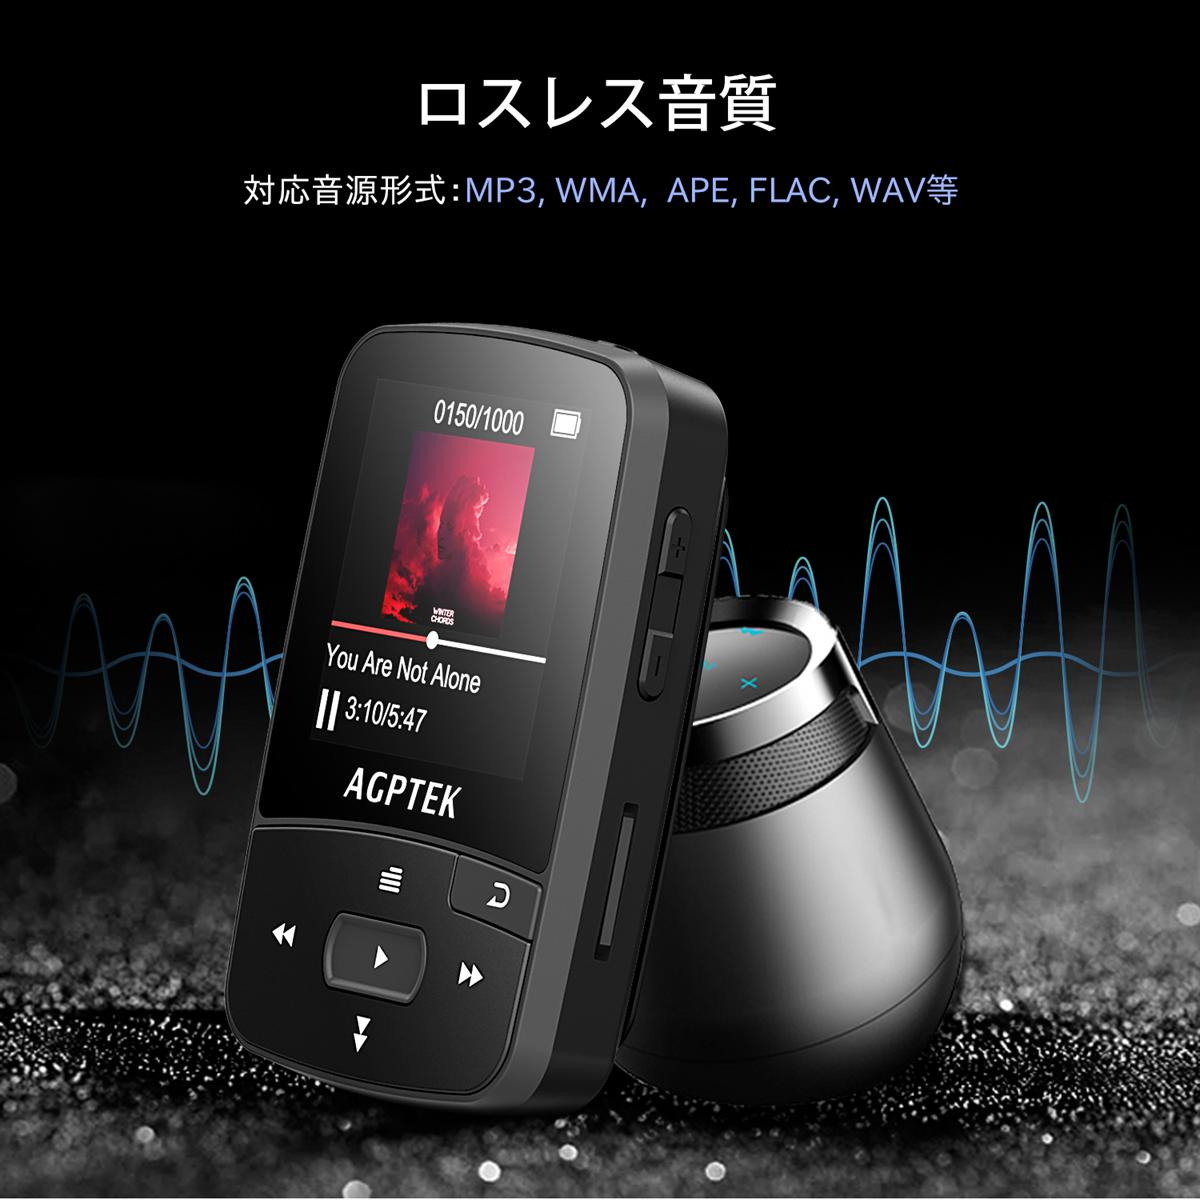 It is correspondence A50 black to AGPTEK music player Bluetooth4 0  deployment clip MP3 player lossless sound quality music player pedometer /  radio /